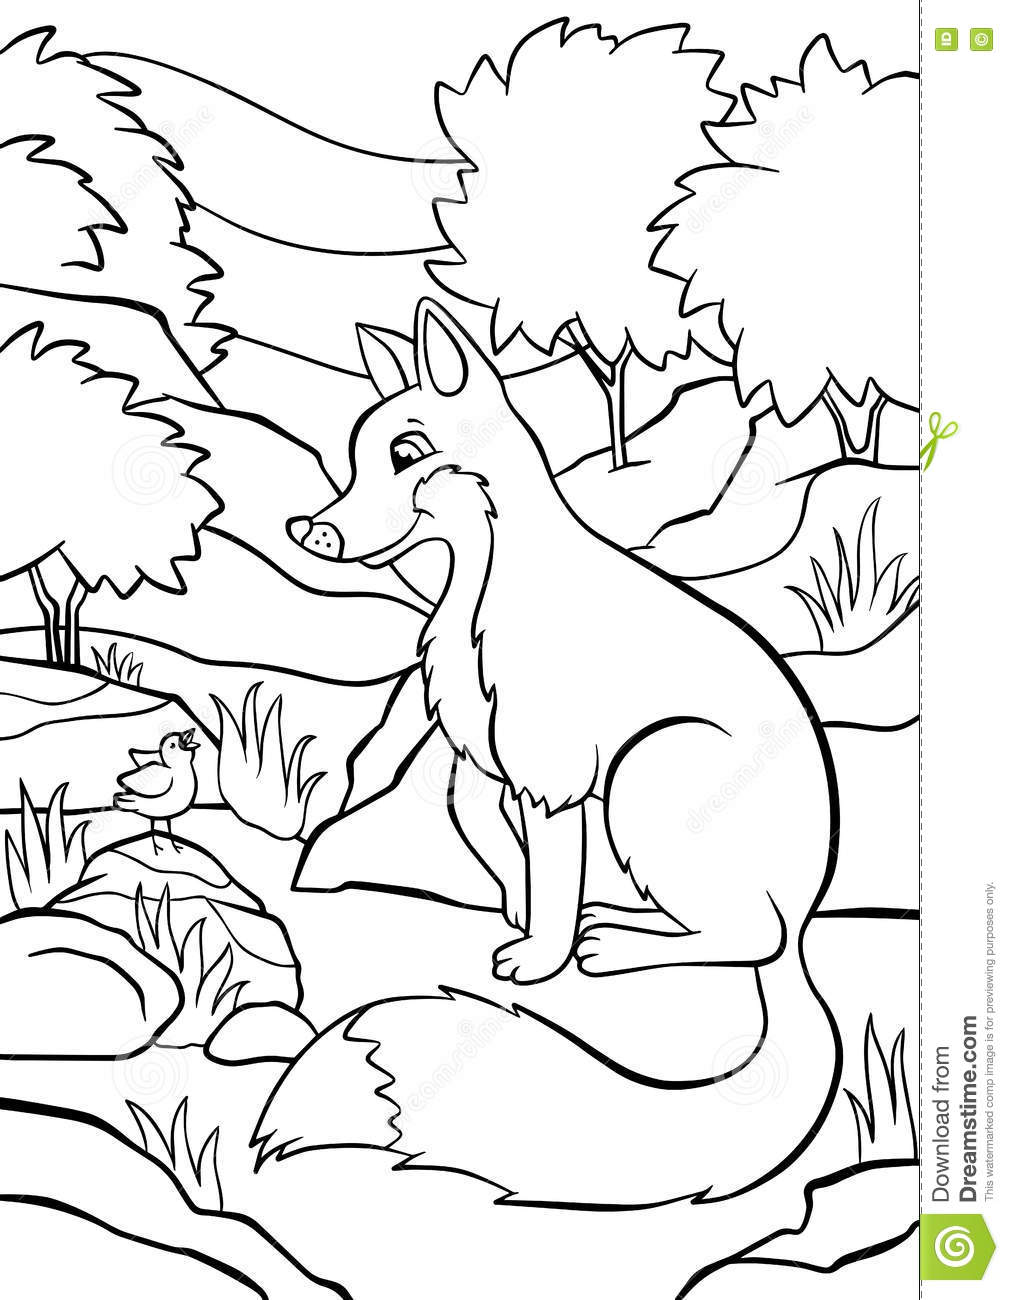 stone fox coloring pages - animals singing at the riverbank cartoon vector